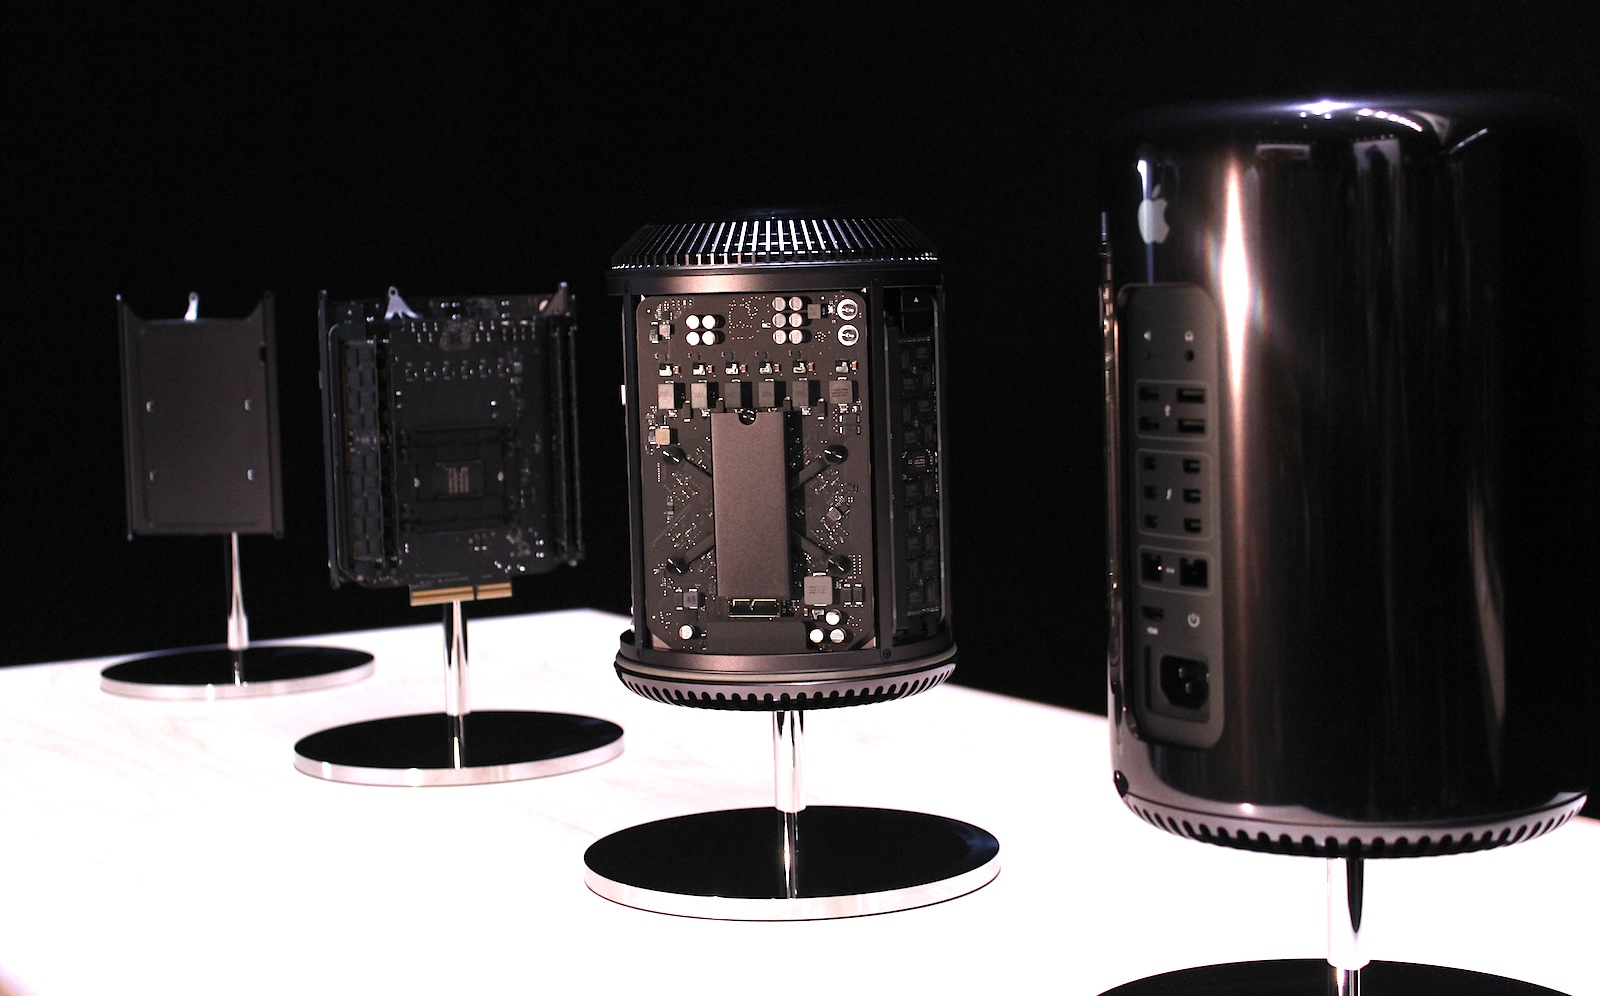 Another view of the Mac Pro's insides.